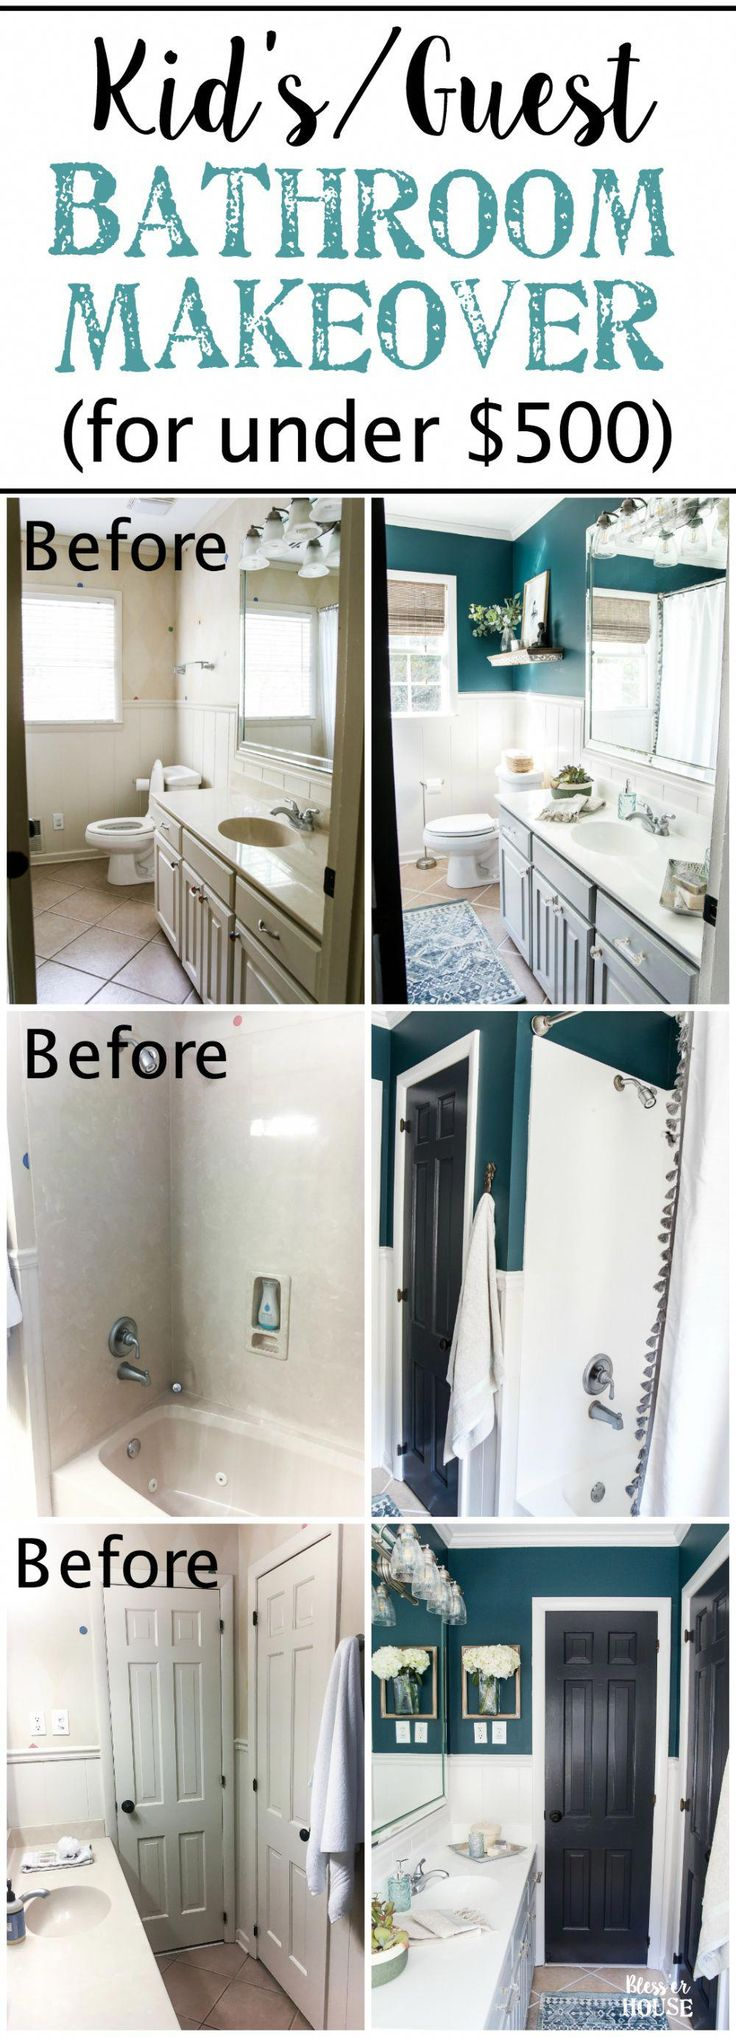 Kid's / Guest Bathroom Makeover on a Budget | blesserhouse.com – A shared kid's / guest bathroom gets a full makeover for less than $500 using just pa…